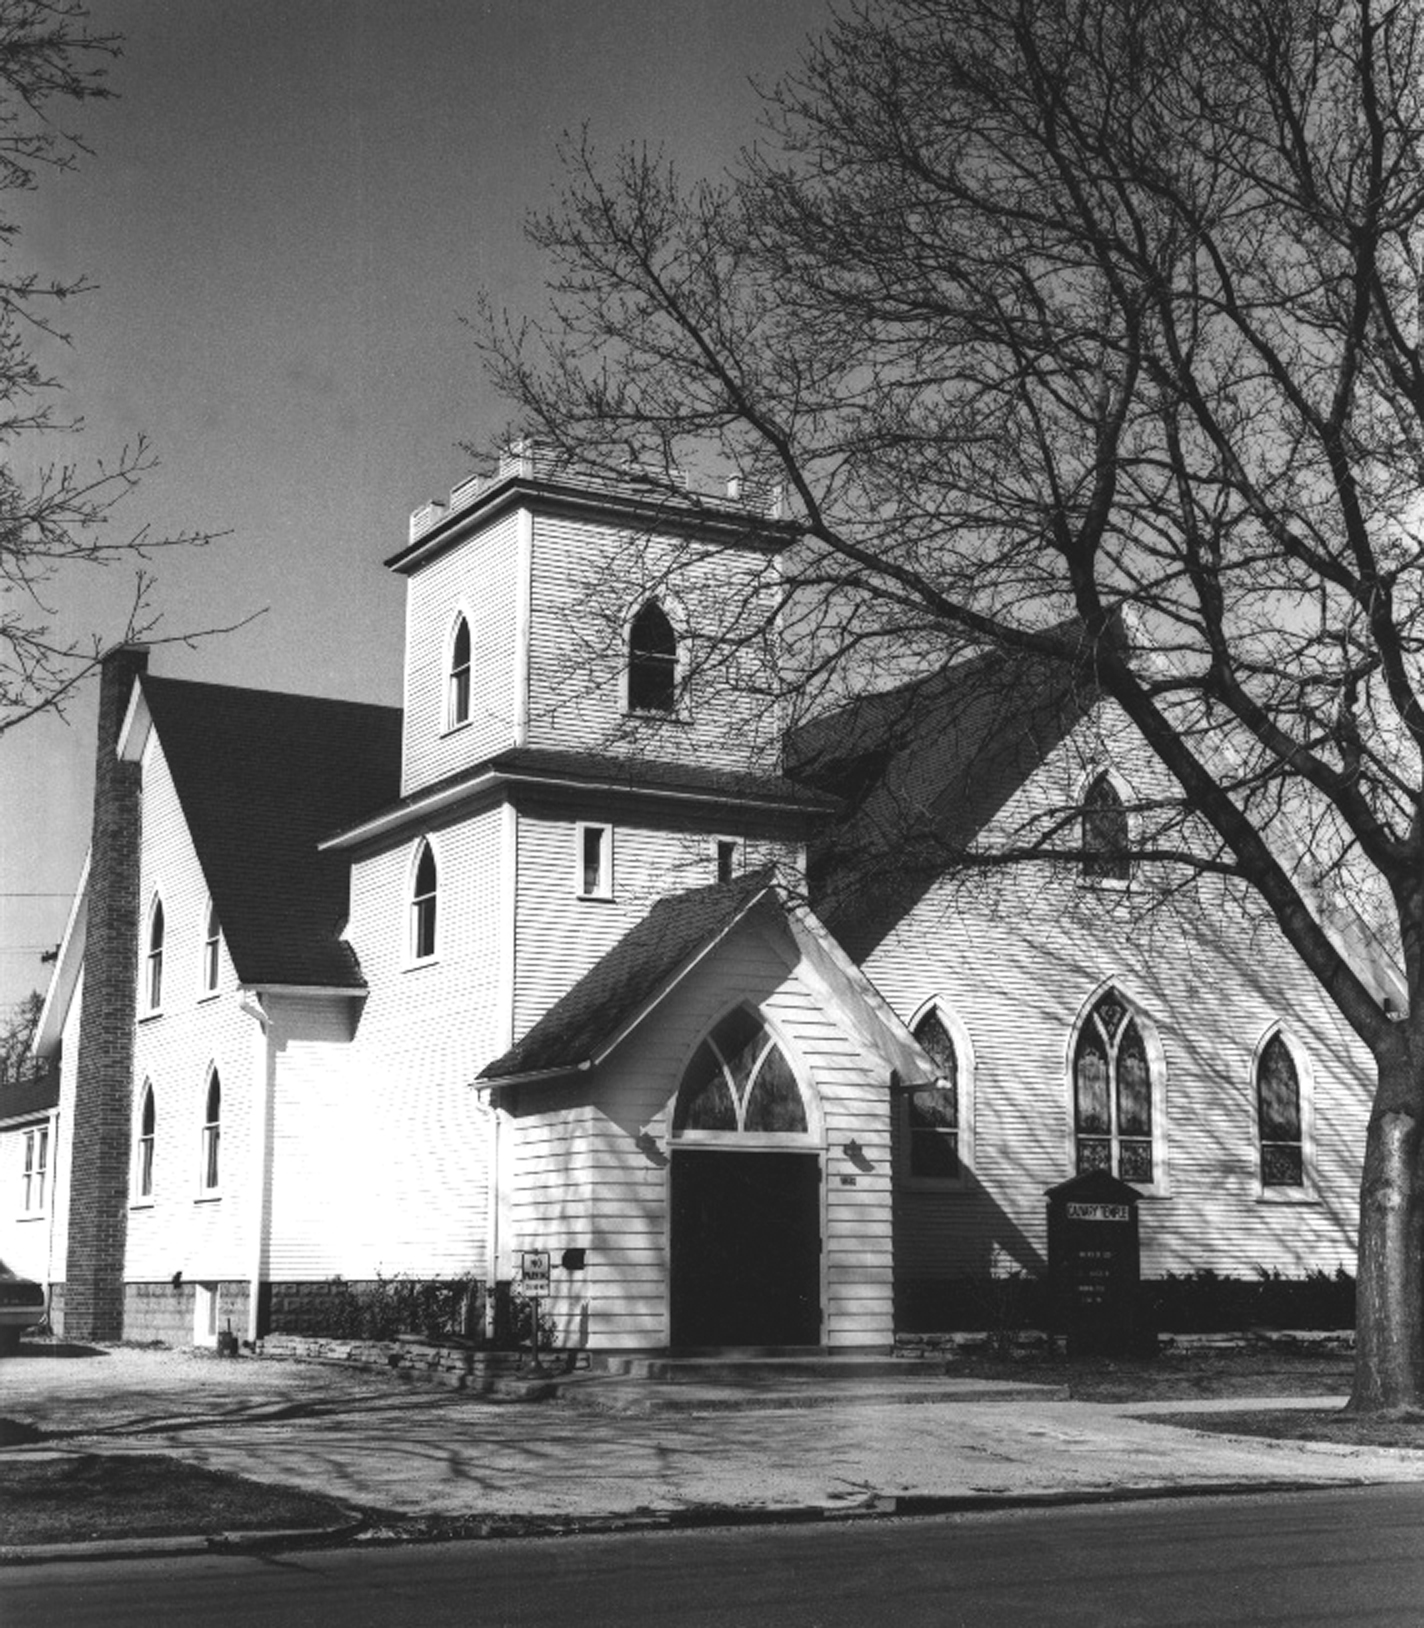 Benton Street Church